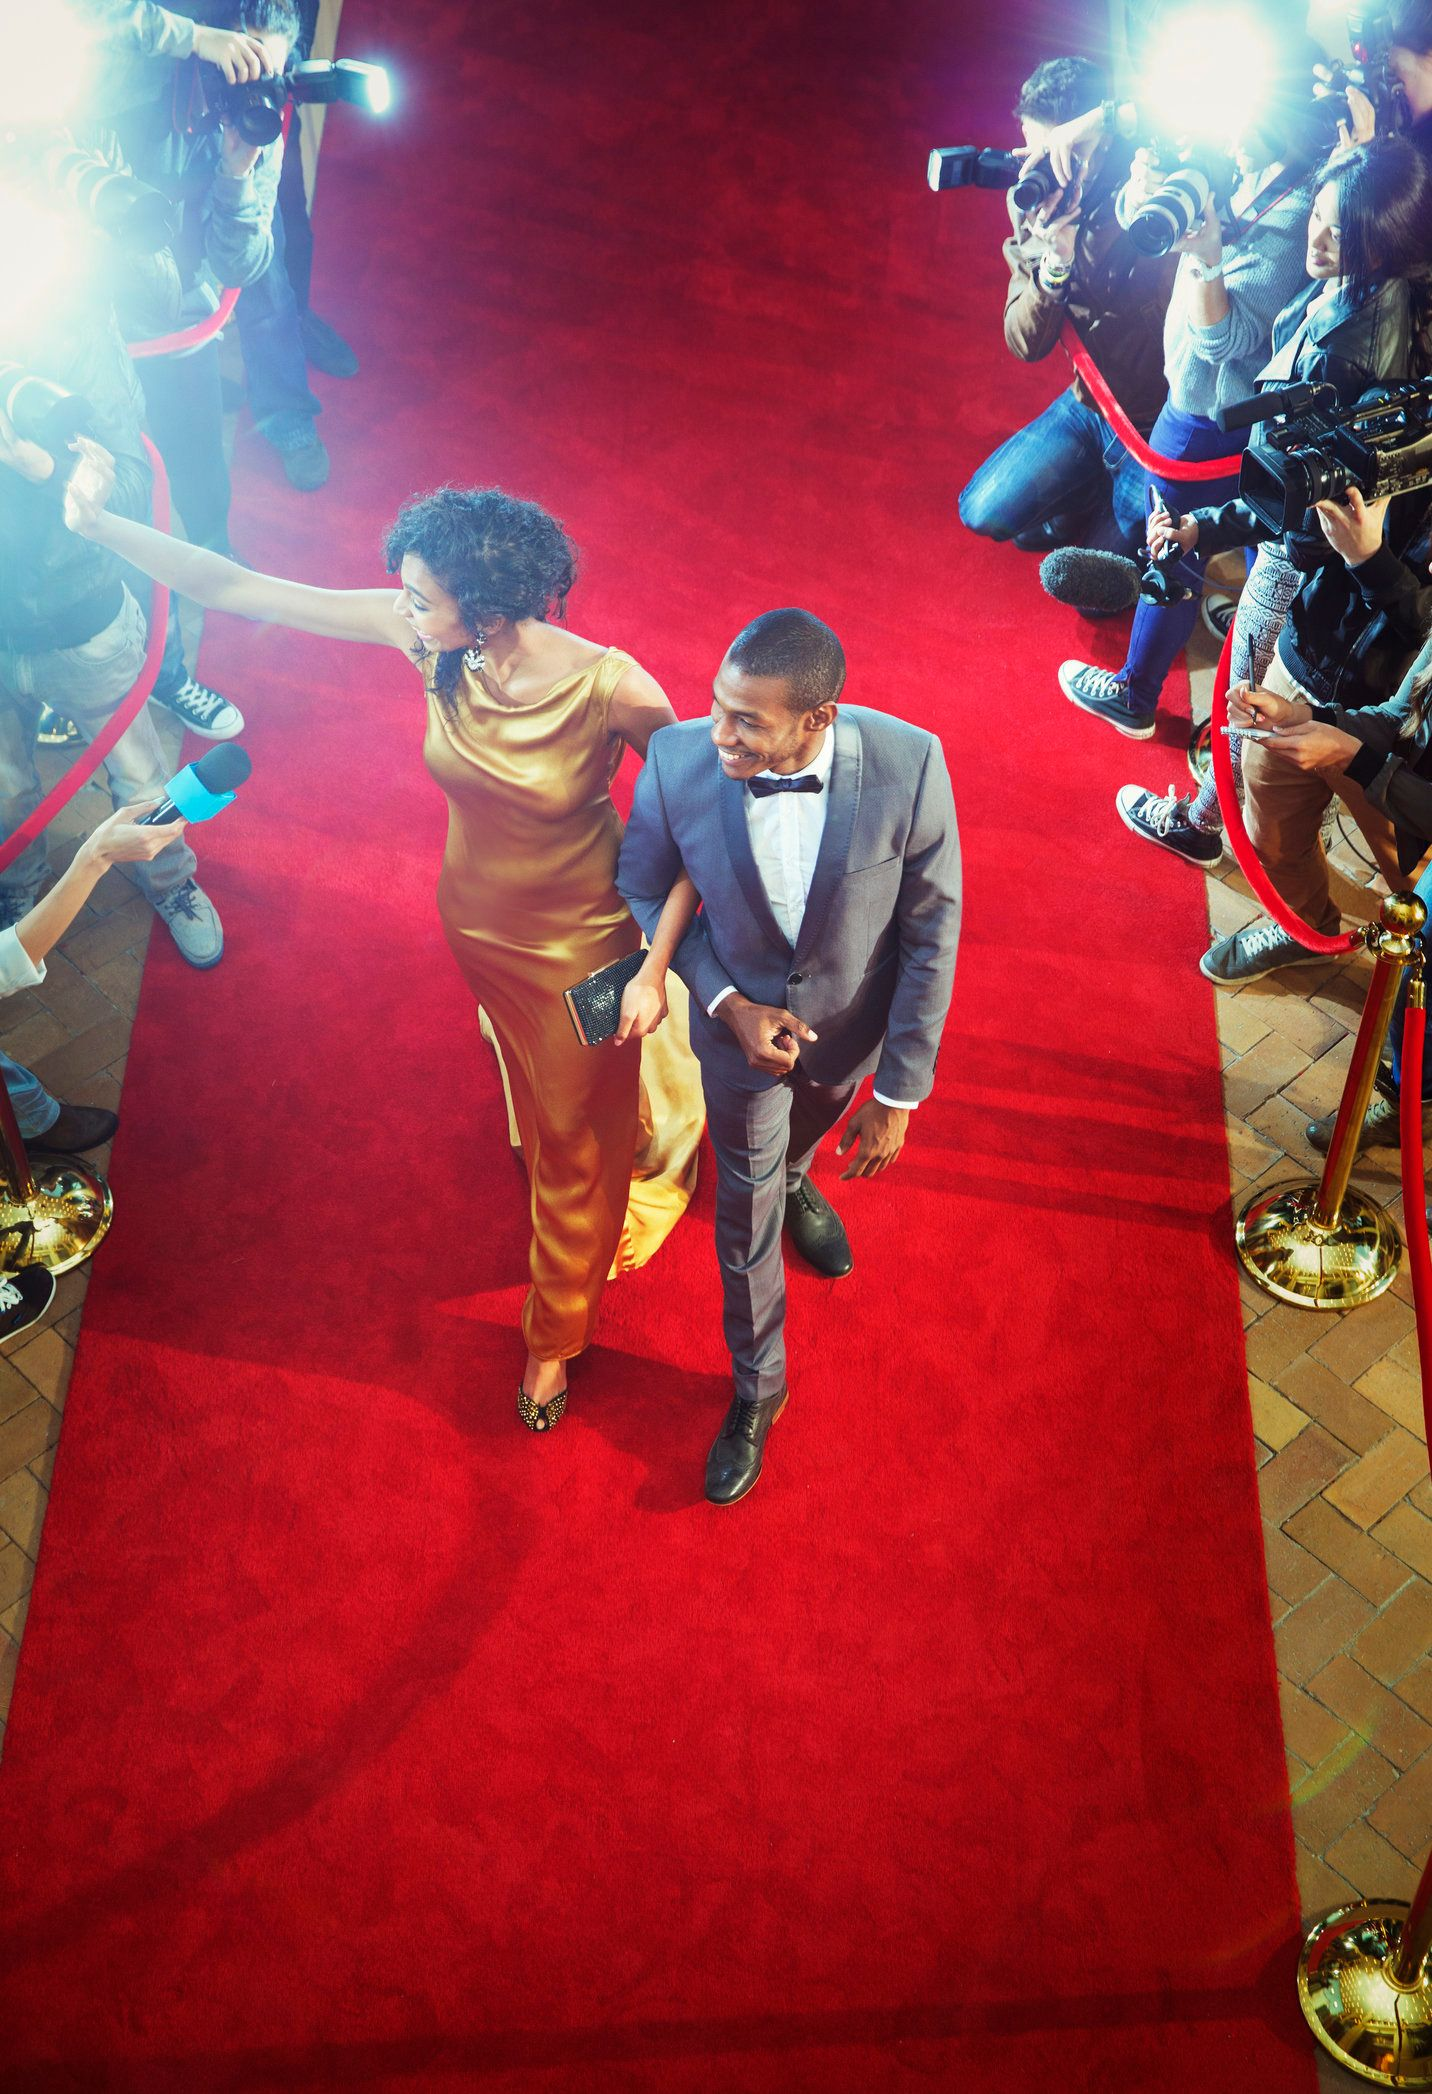 Celebrity couple arriving at event waving and walking the red carpet